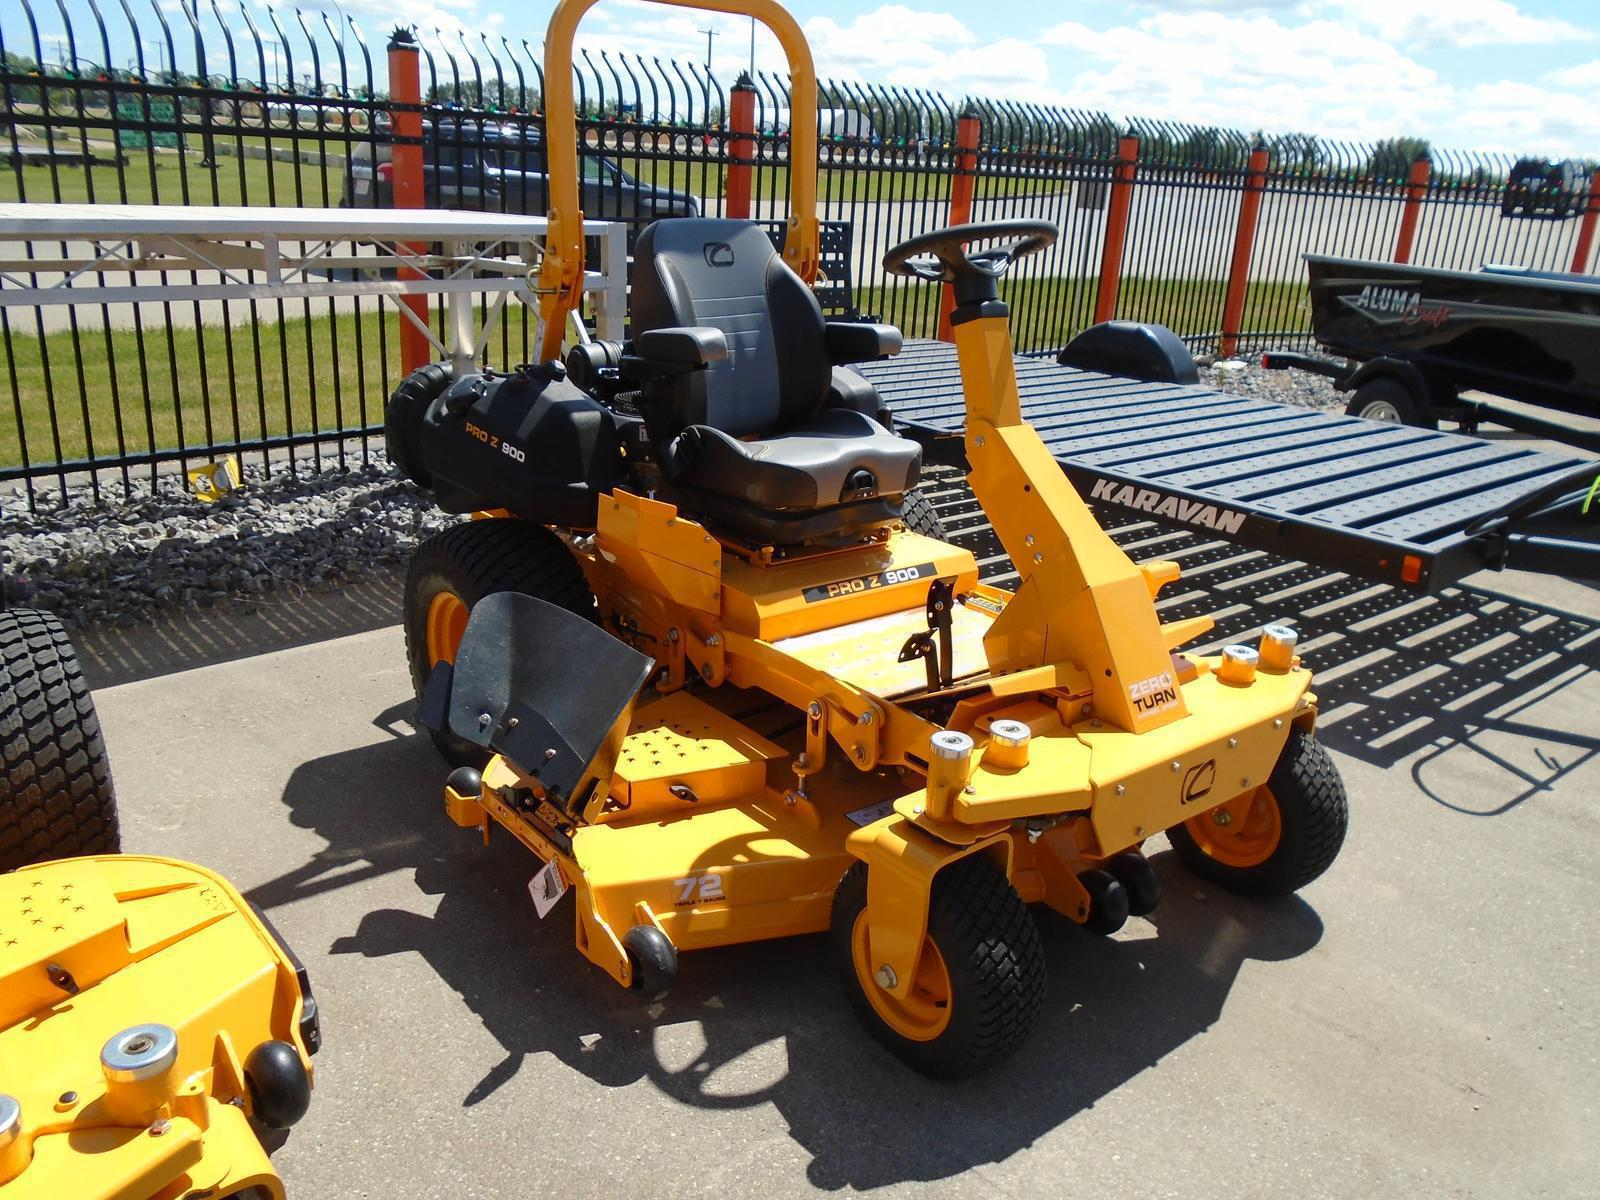 Inventory from Cub Cadet Westlock Powersports & Marine, Inc